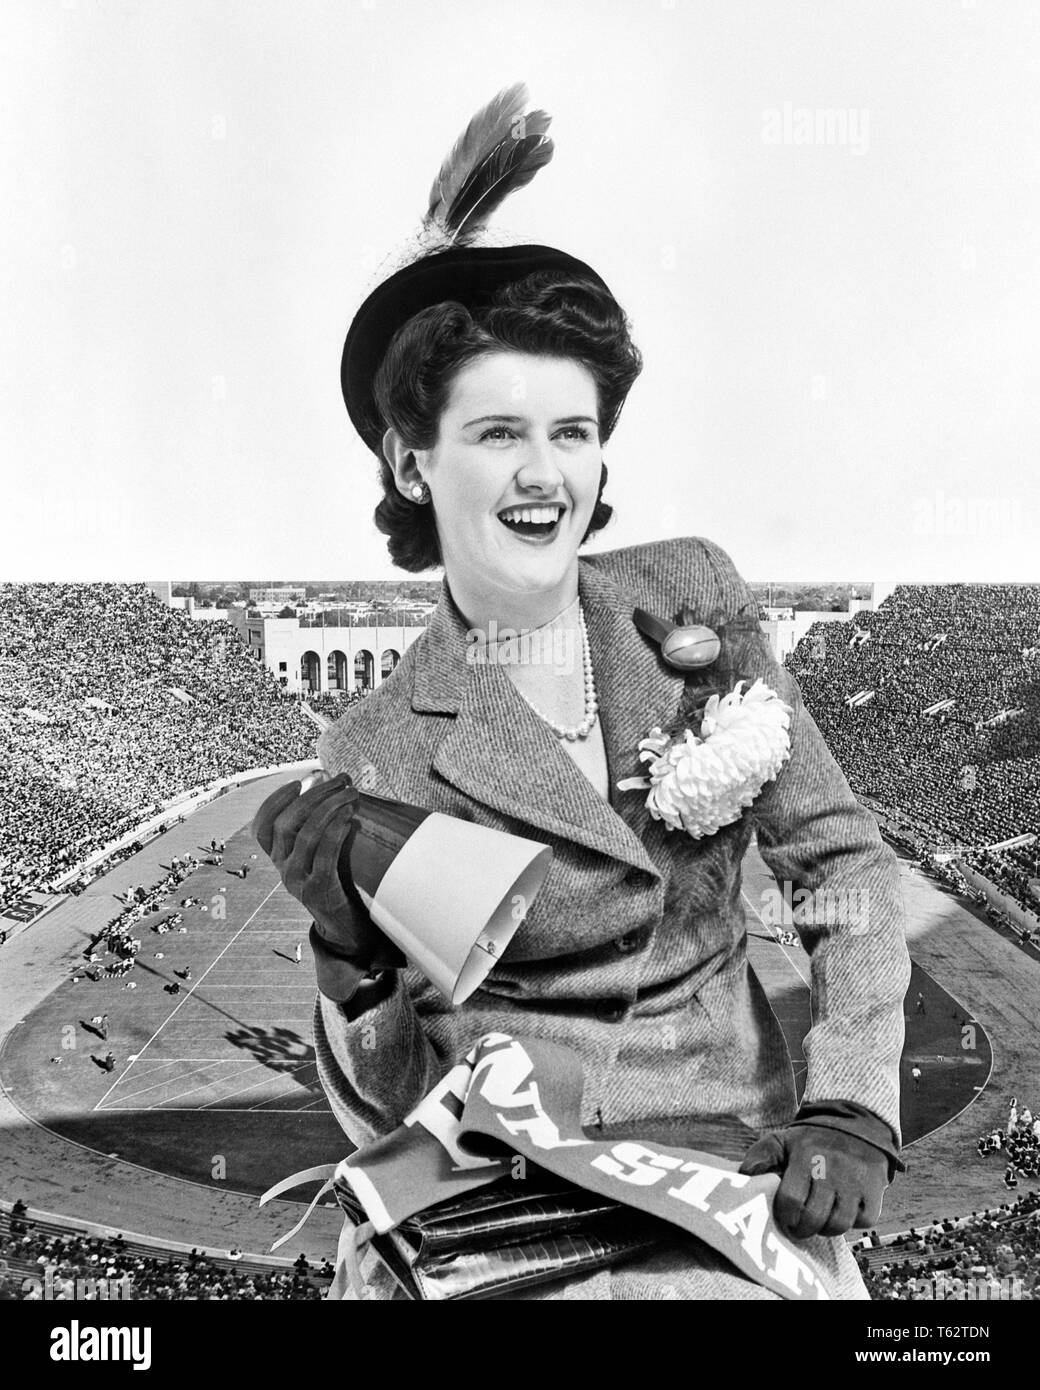 1940s SMILING BRUNETTE WOMAN COED ALUMNA WEARING HOMECOMING CORSAGE HOLDING MEGAPHONE COLLEGE PENNANT STADIUM BACKGROUND - f1689 HAR001 HARS PLEASED JOY LIFESTYLE CELEBRATION FEMALES STUDIO SHOT EVENT HEALTHINESS COPY SPACE HALF-LENGTH LADIES PERSONS B&W BRUNETTE HAPPINESS CHEERFUL STYLES COMPOSITE EXCITEMENT MUM RECREATION CHRYSANTHEMUM PRIDE PENNANT SMILES CORSAGE HOMECOMING JOYFUL STYLISH BOOSTER ALUMNI ATTENDING COED FASHIONS FOOTBALLS YOUNG ADULT WOMAN AMERICAN FOOTBALL BLACK AND WHITE CAUCASIAN ETHNICITY HAR001 OLD FASHIONED - Stock Image